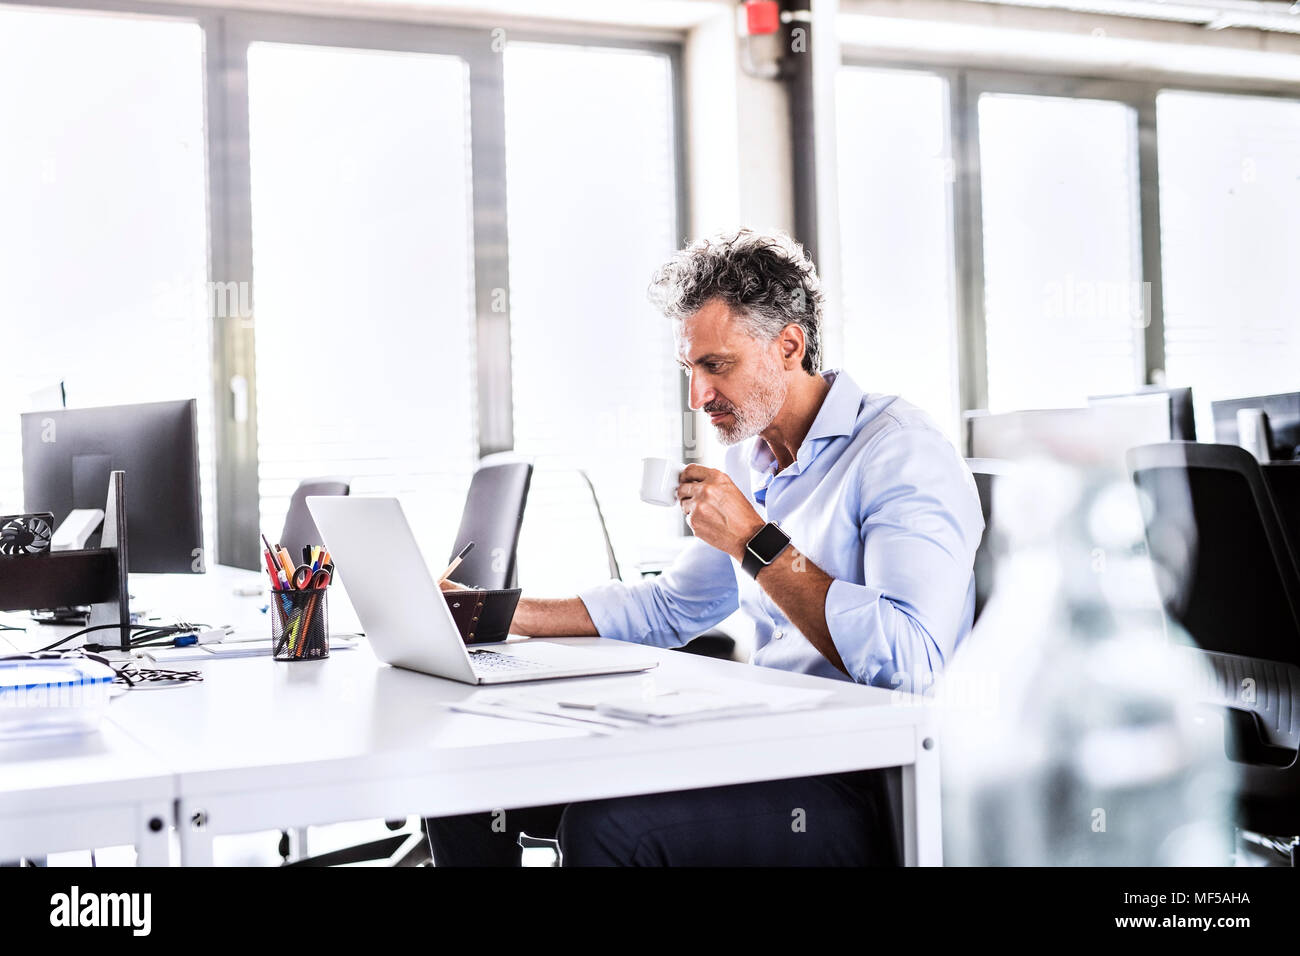 Mature businessman sitting at desk in office using laptop and drinking coffee - Stock Image